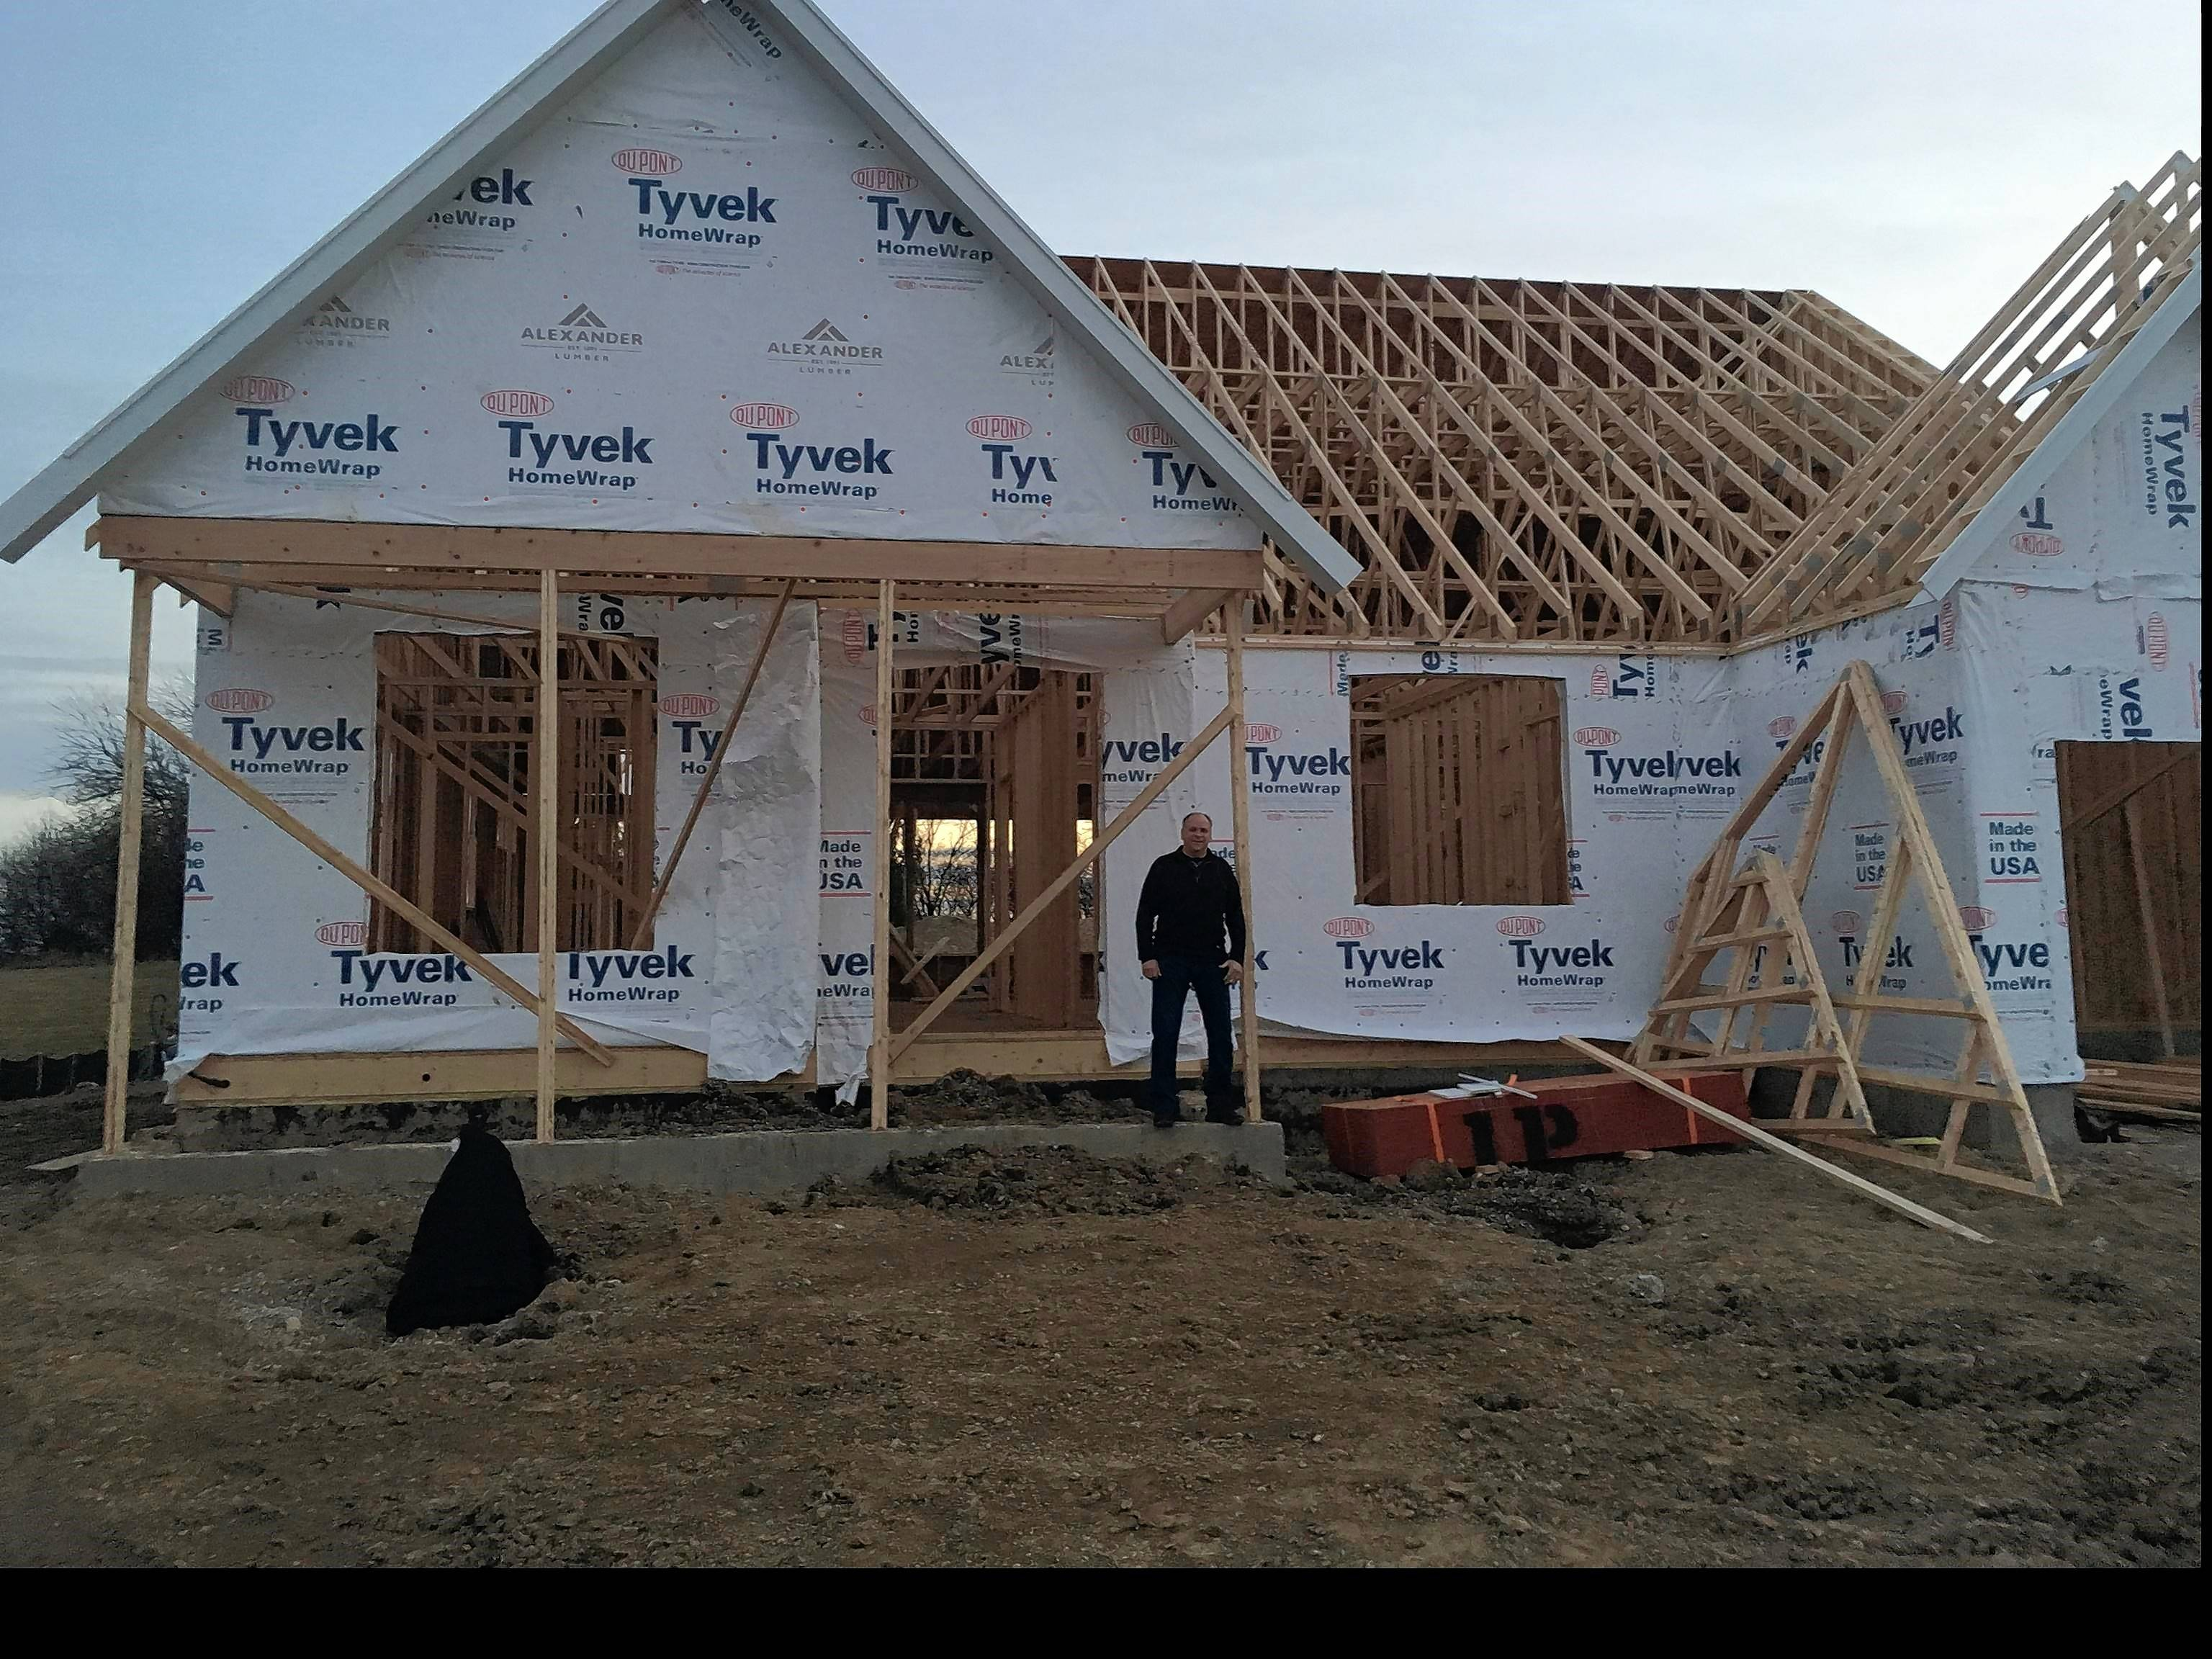 Jay Dulla has been involved in all aspects of the homebuilding industry, from financing to construction and marketing.